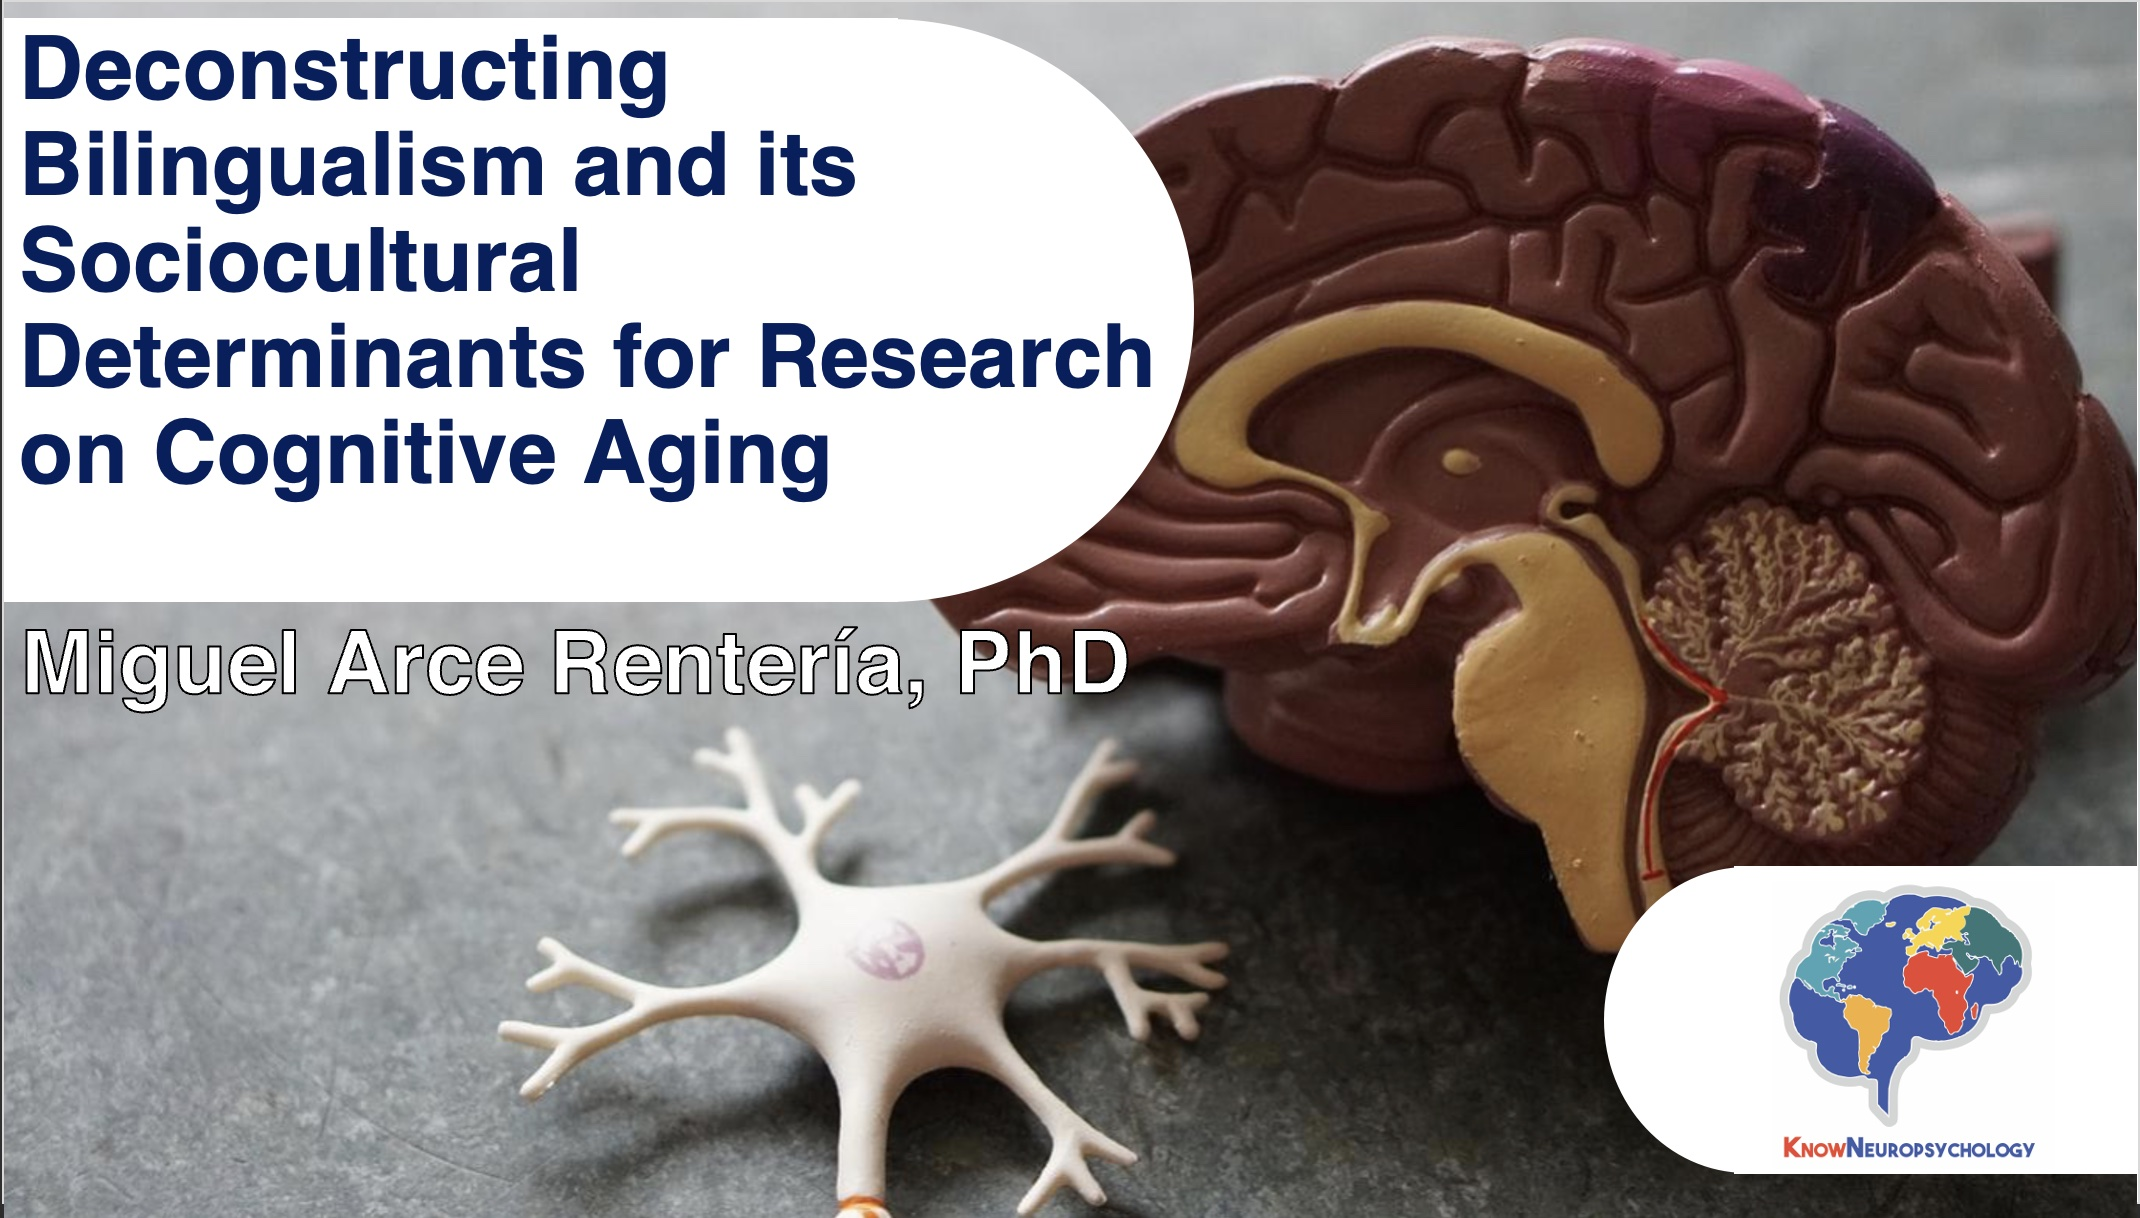 Deconstructing bilingualism and its sociocultural determinants for research on cognitive aging with Dr. Miguel Arce Rentería